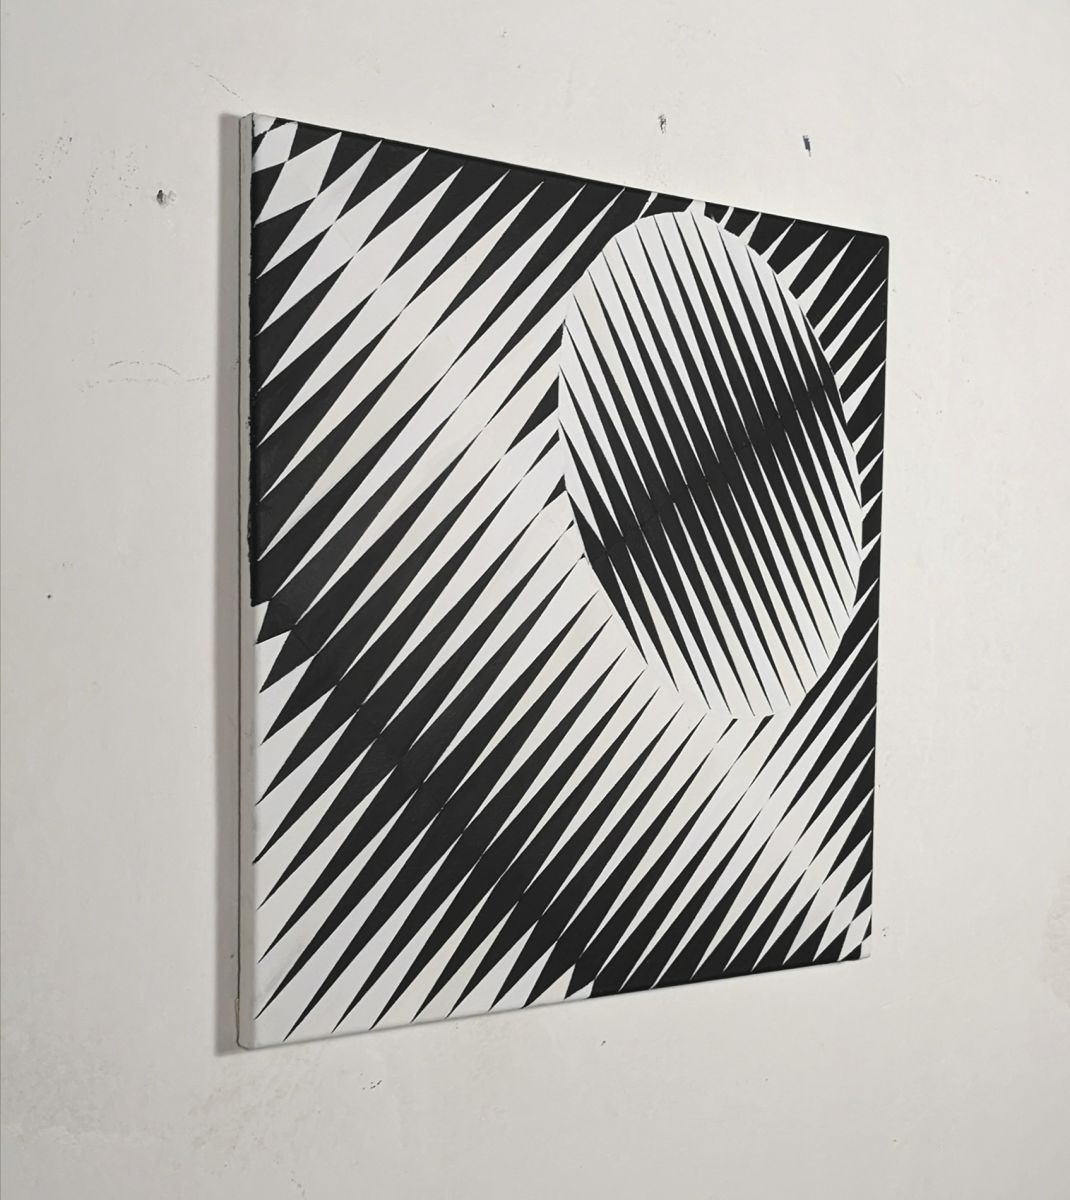 painting-Eder-diagonal-oval-black and white